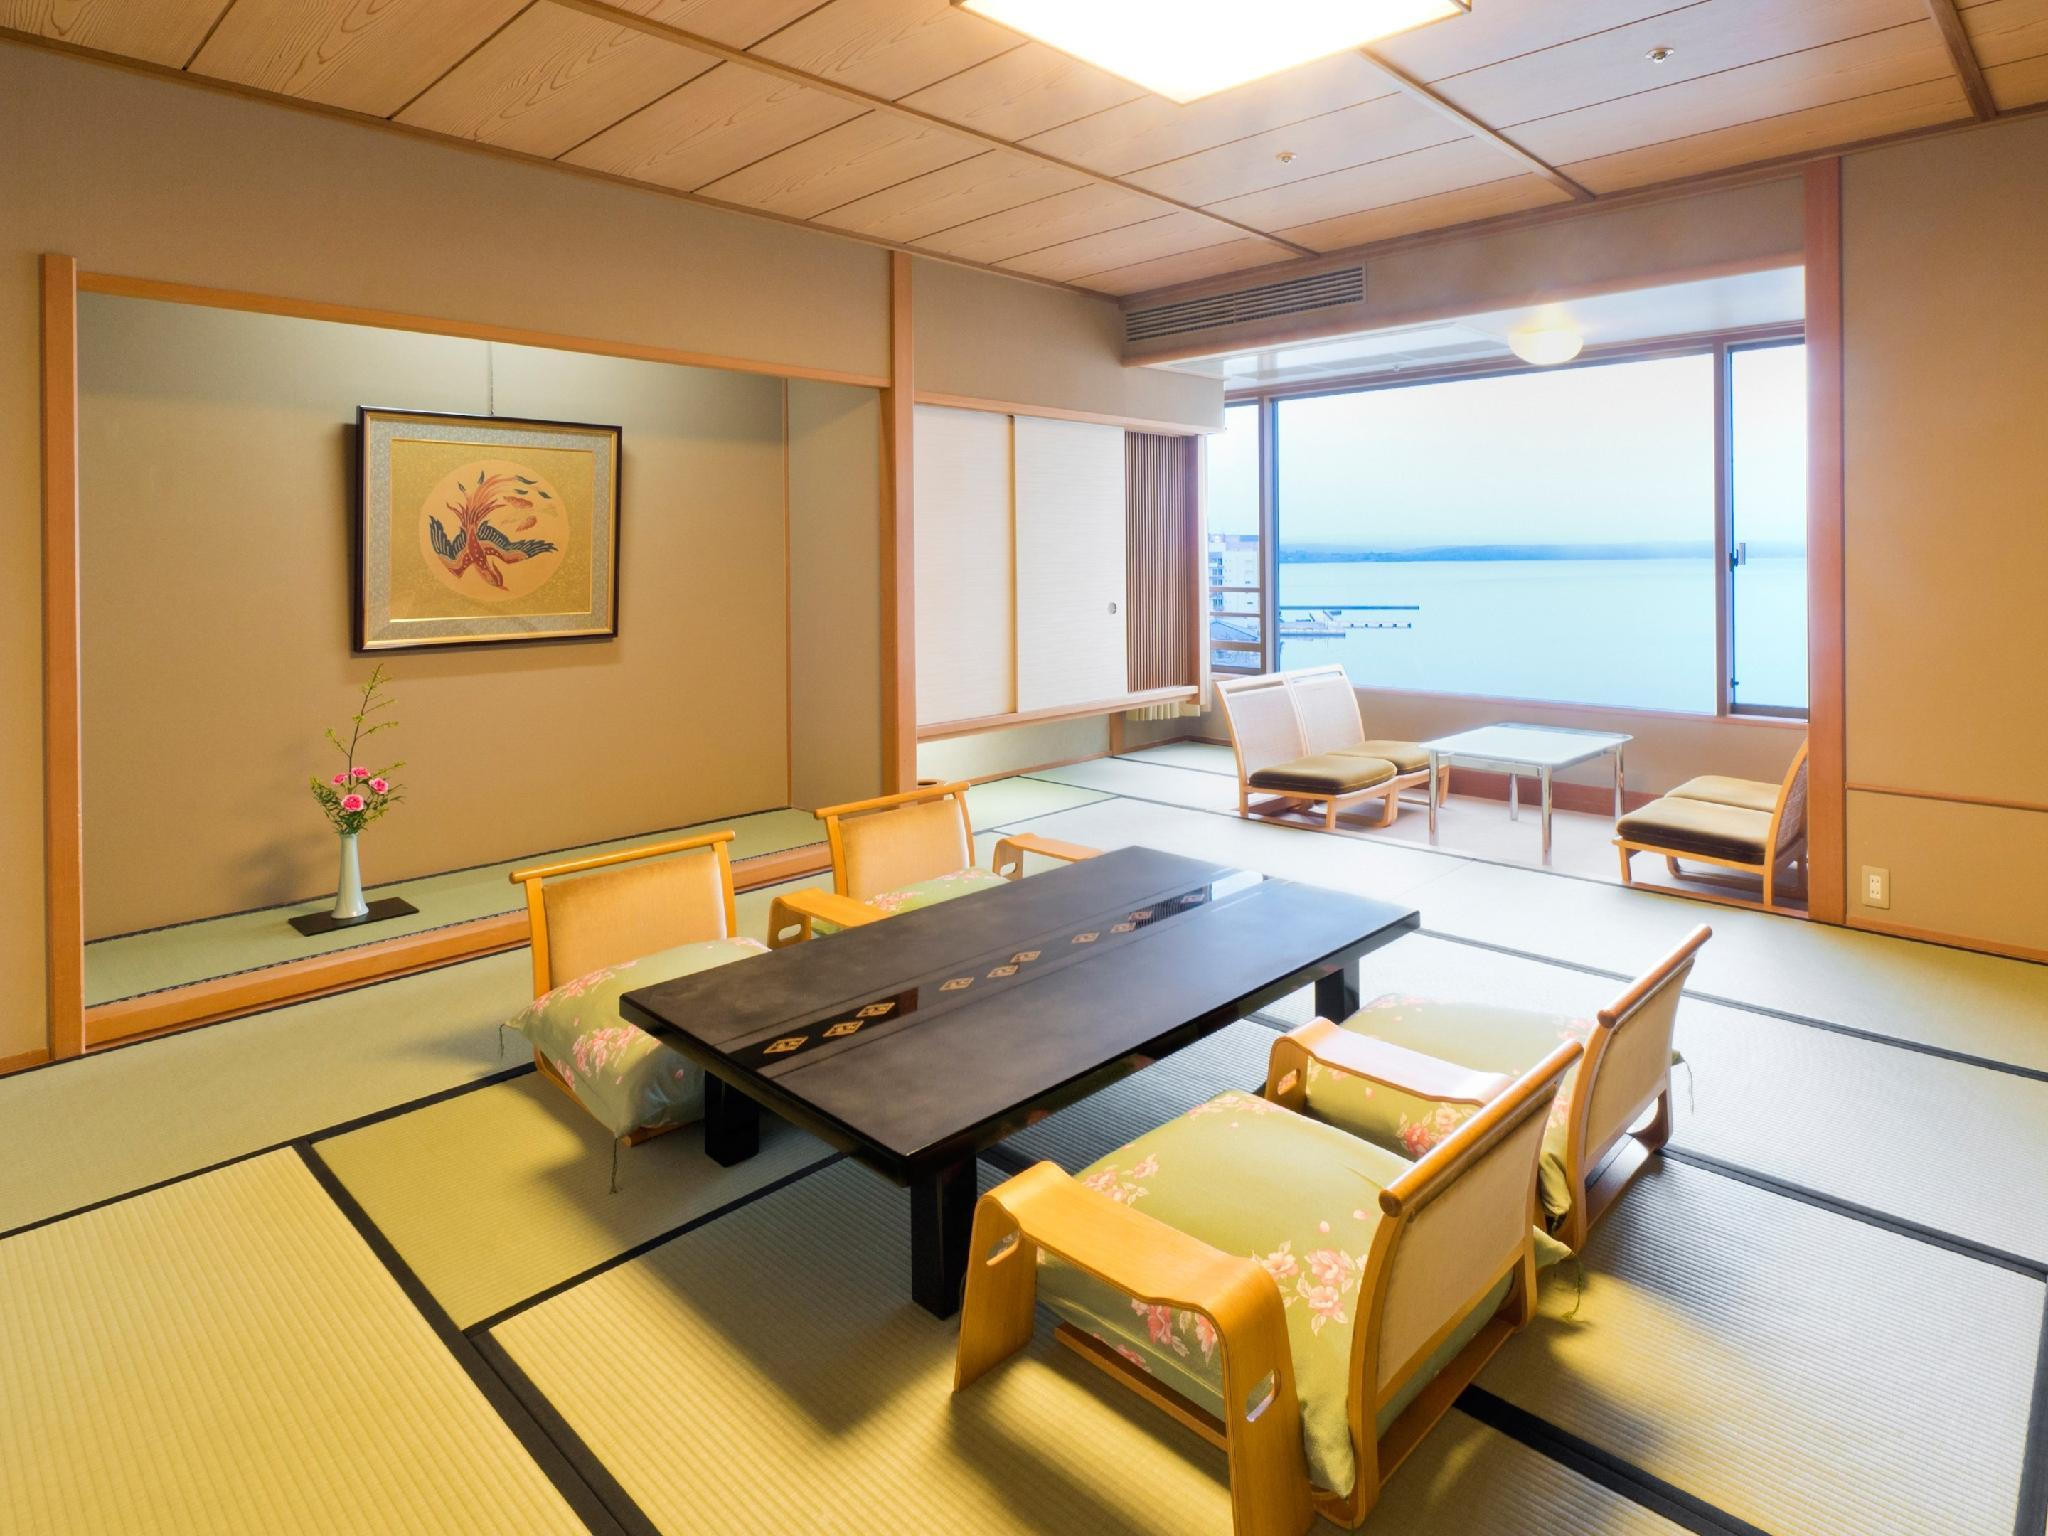 和室房・東之風・禁菸・晚餐地點: 個室茶寮 (Japanese-style Room (Higashi-no-Kaze Wing, Non-Smoking ) *Private dining)